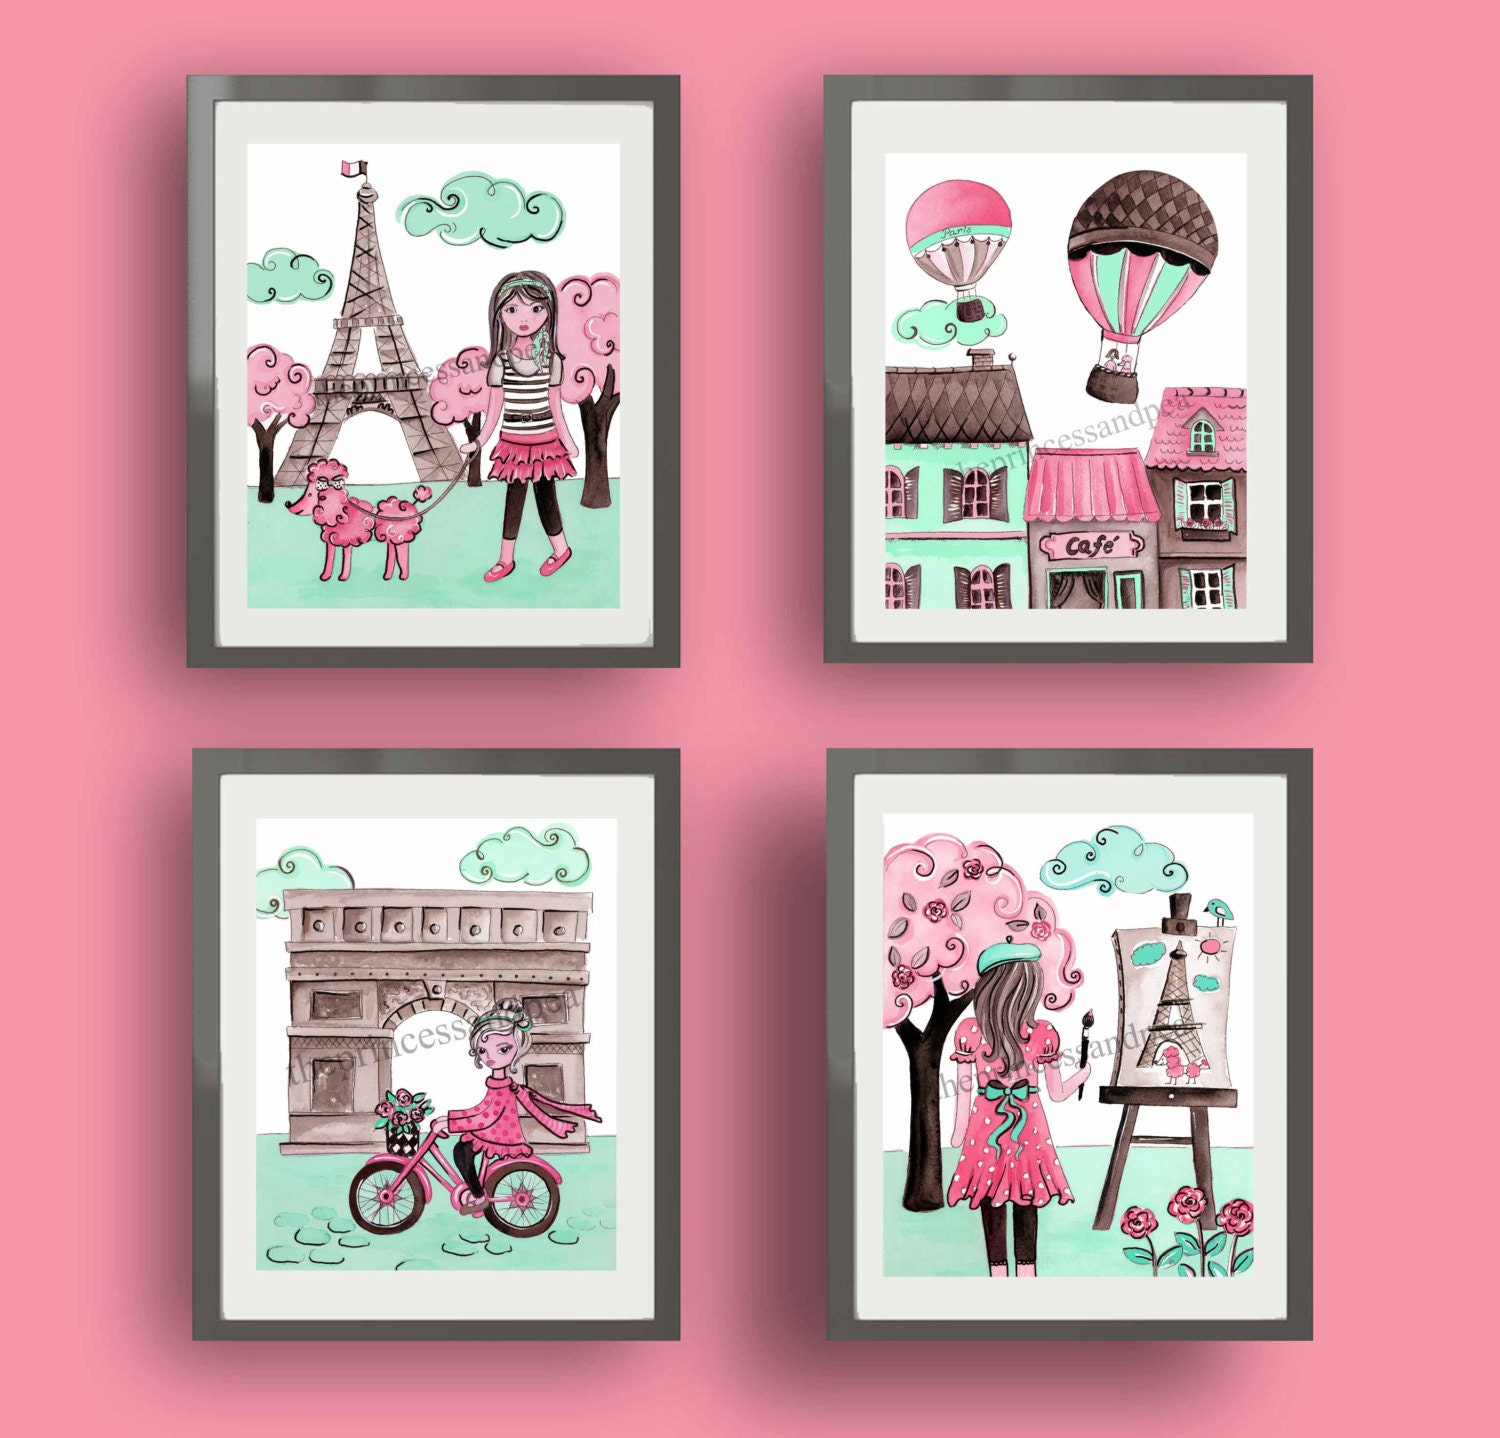 Parisian Baby Nursery Design Pictures Remodel Decor And: Paris Art Paris Decor Baby Nursery Art Decor Pink Mint